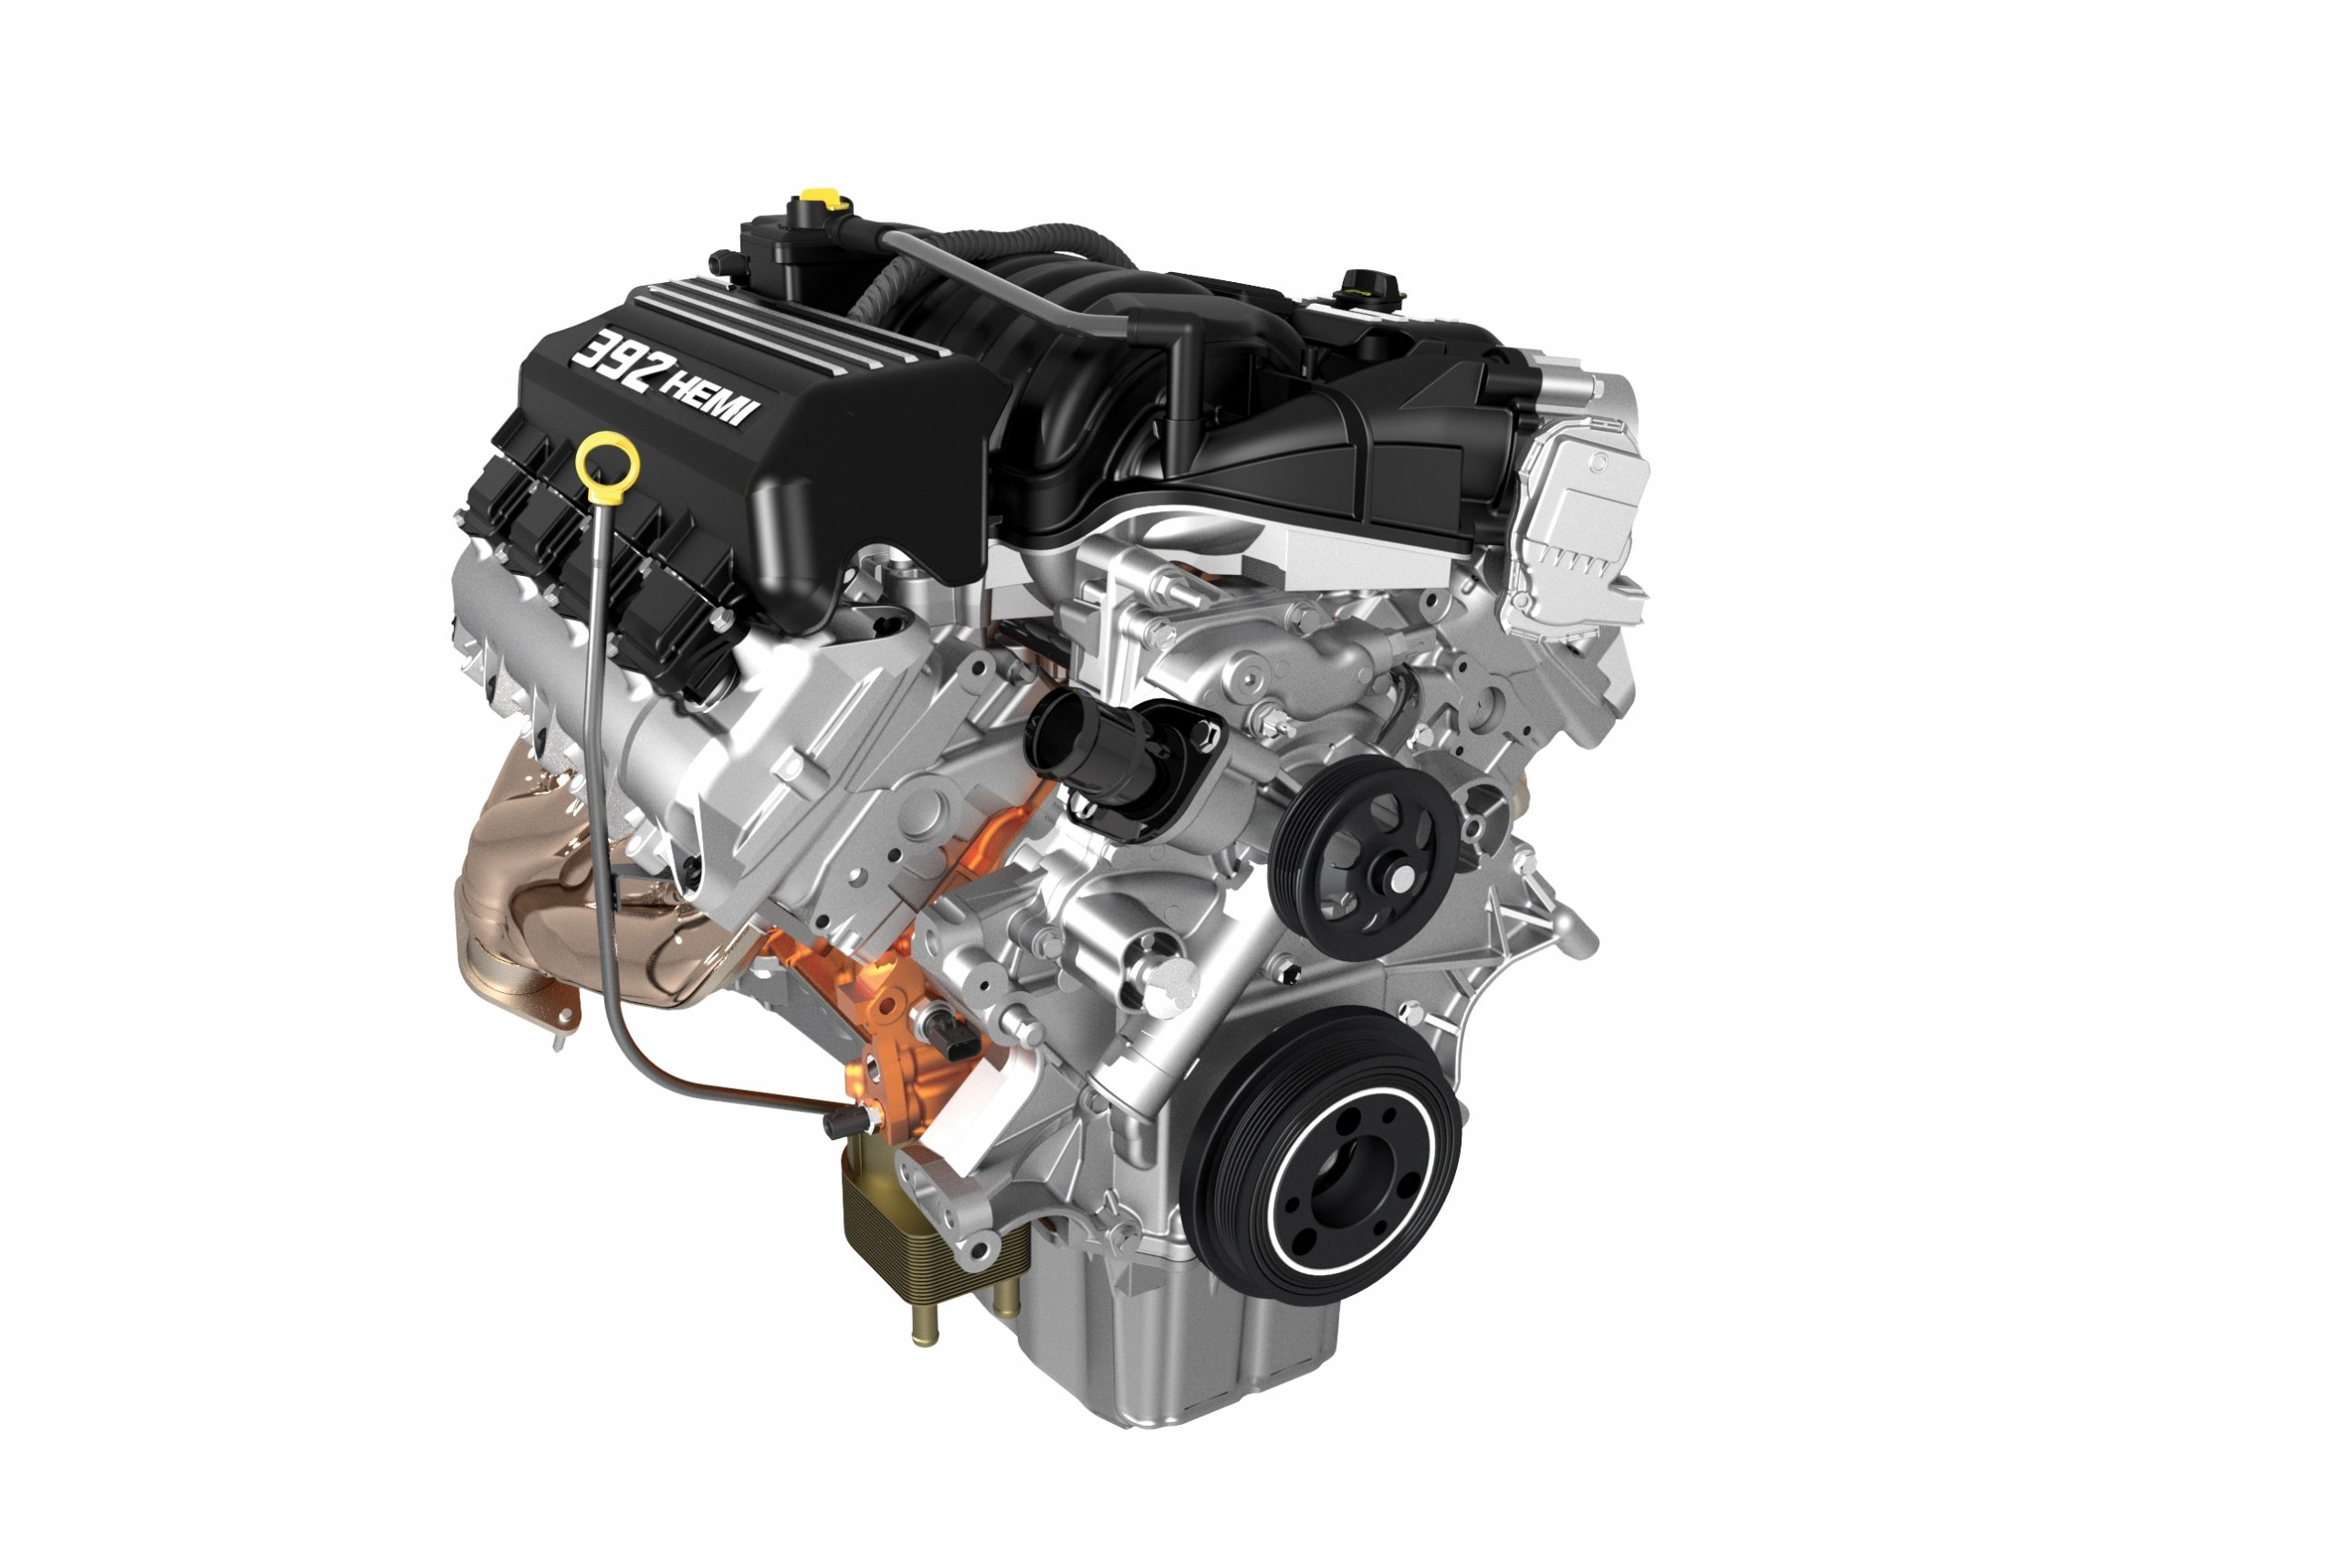 6.4-liter Crate HEMI® V-8 engine